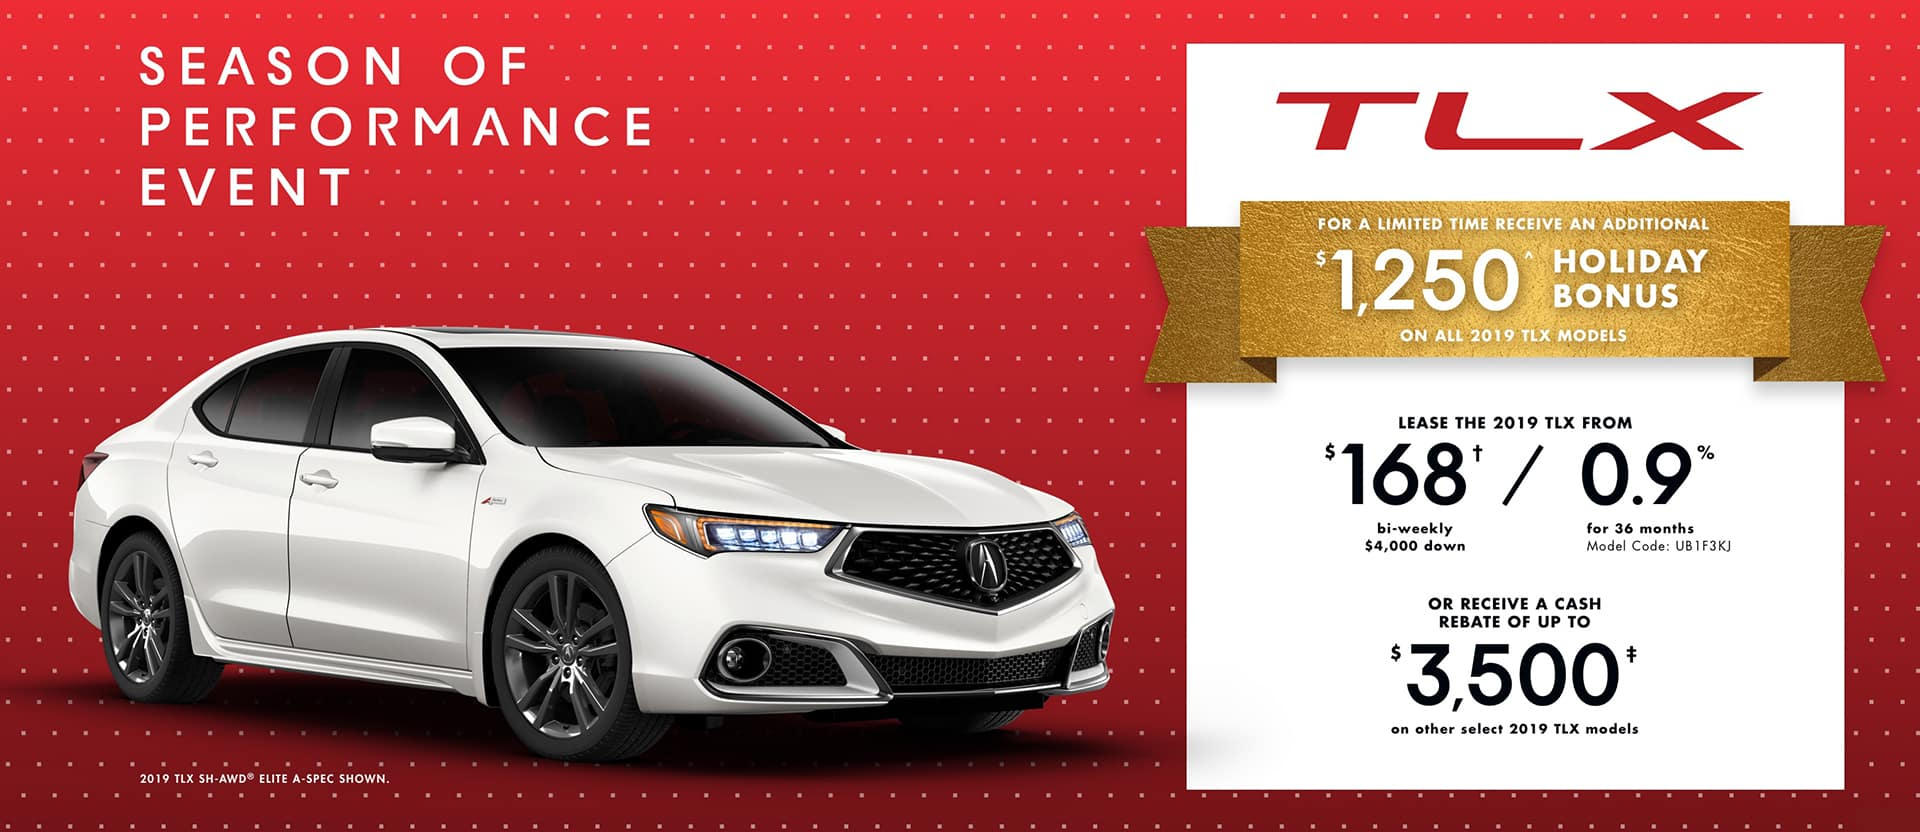 Acura TLX Special